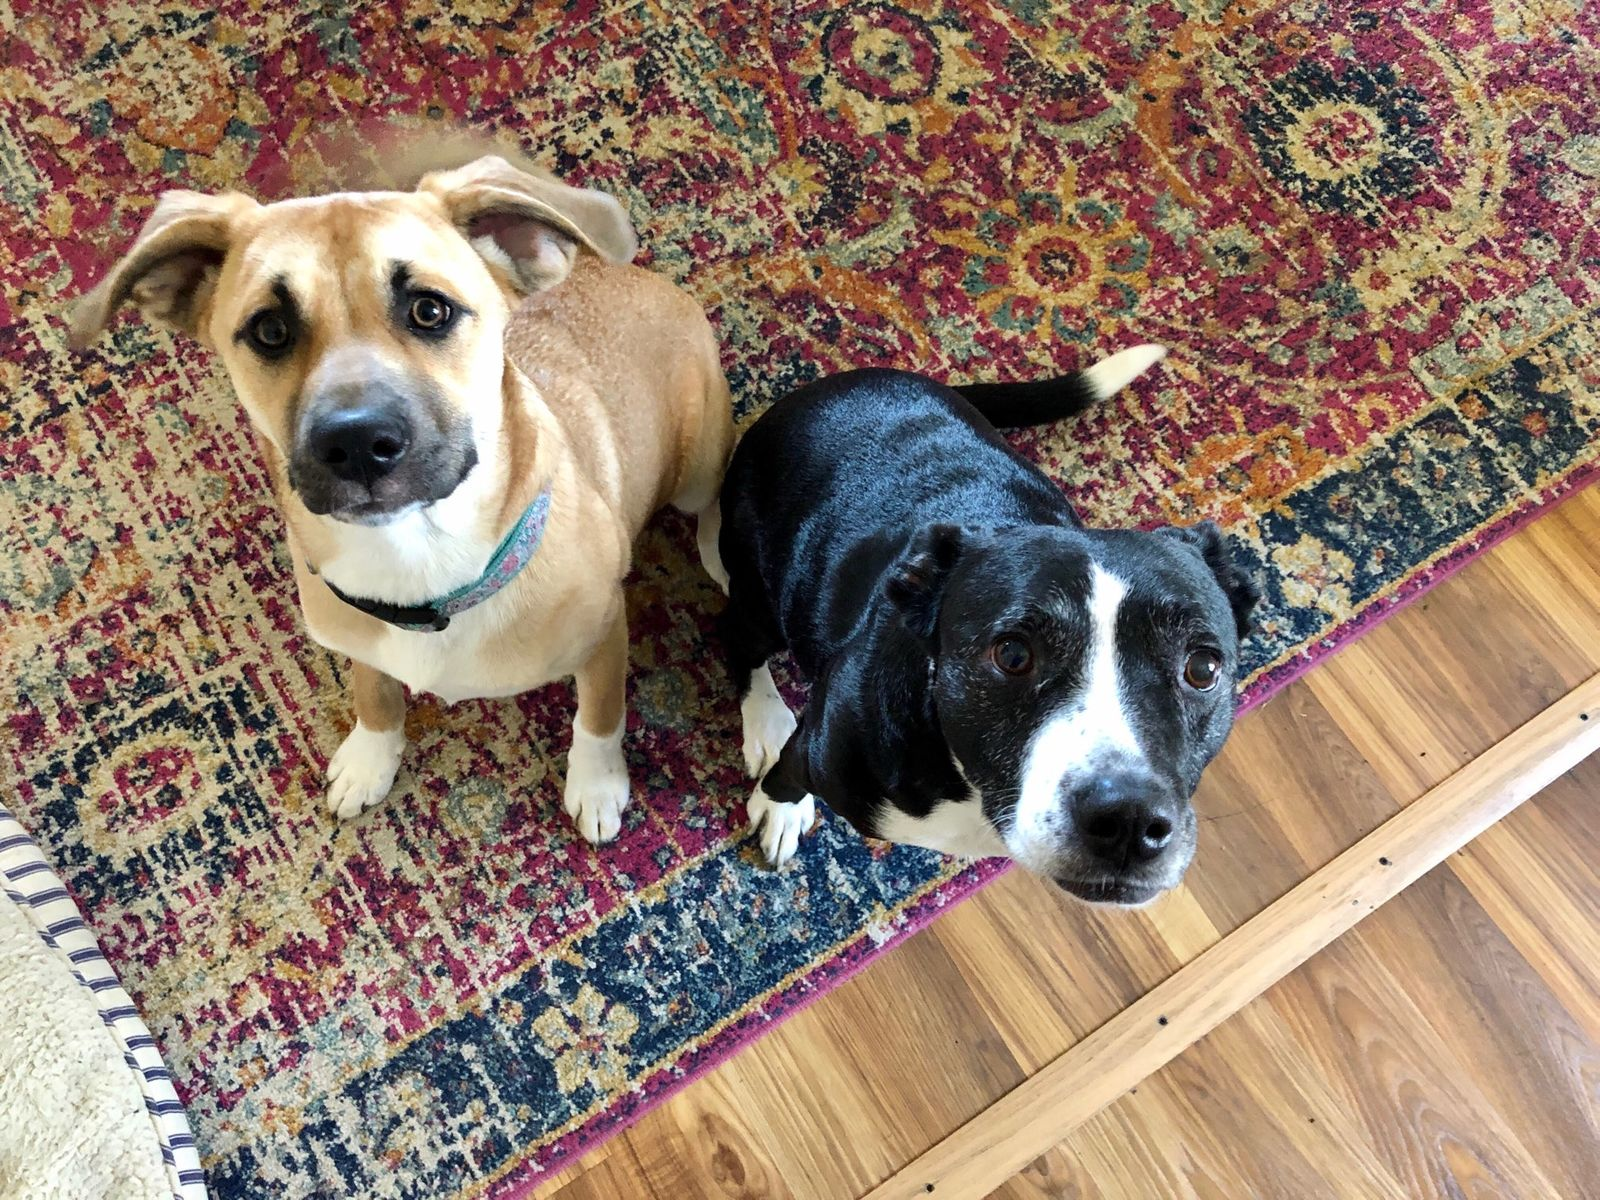 Reporter Genevieve Grippo shares a photo of her two dogs, Ellie on the left and Phoebe on the right. (WWMT)